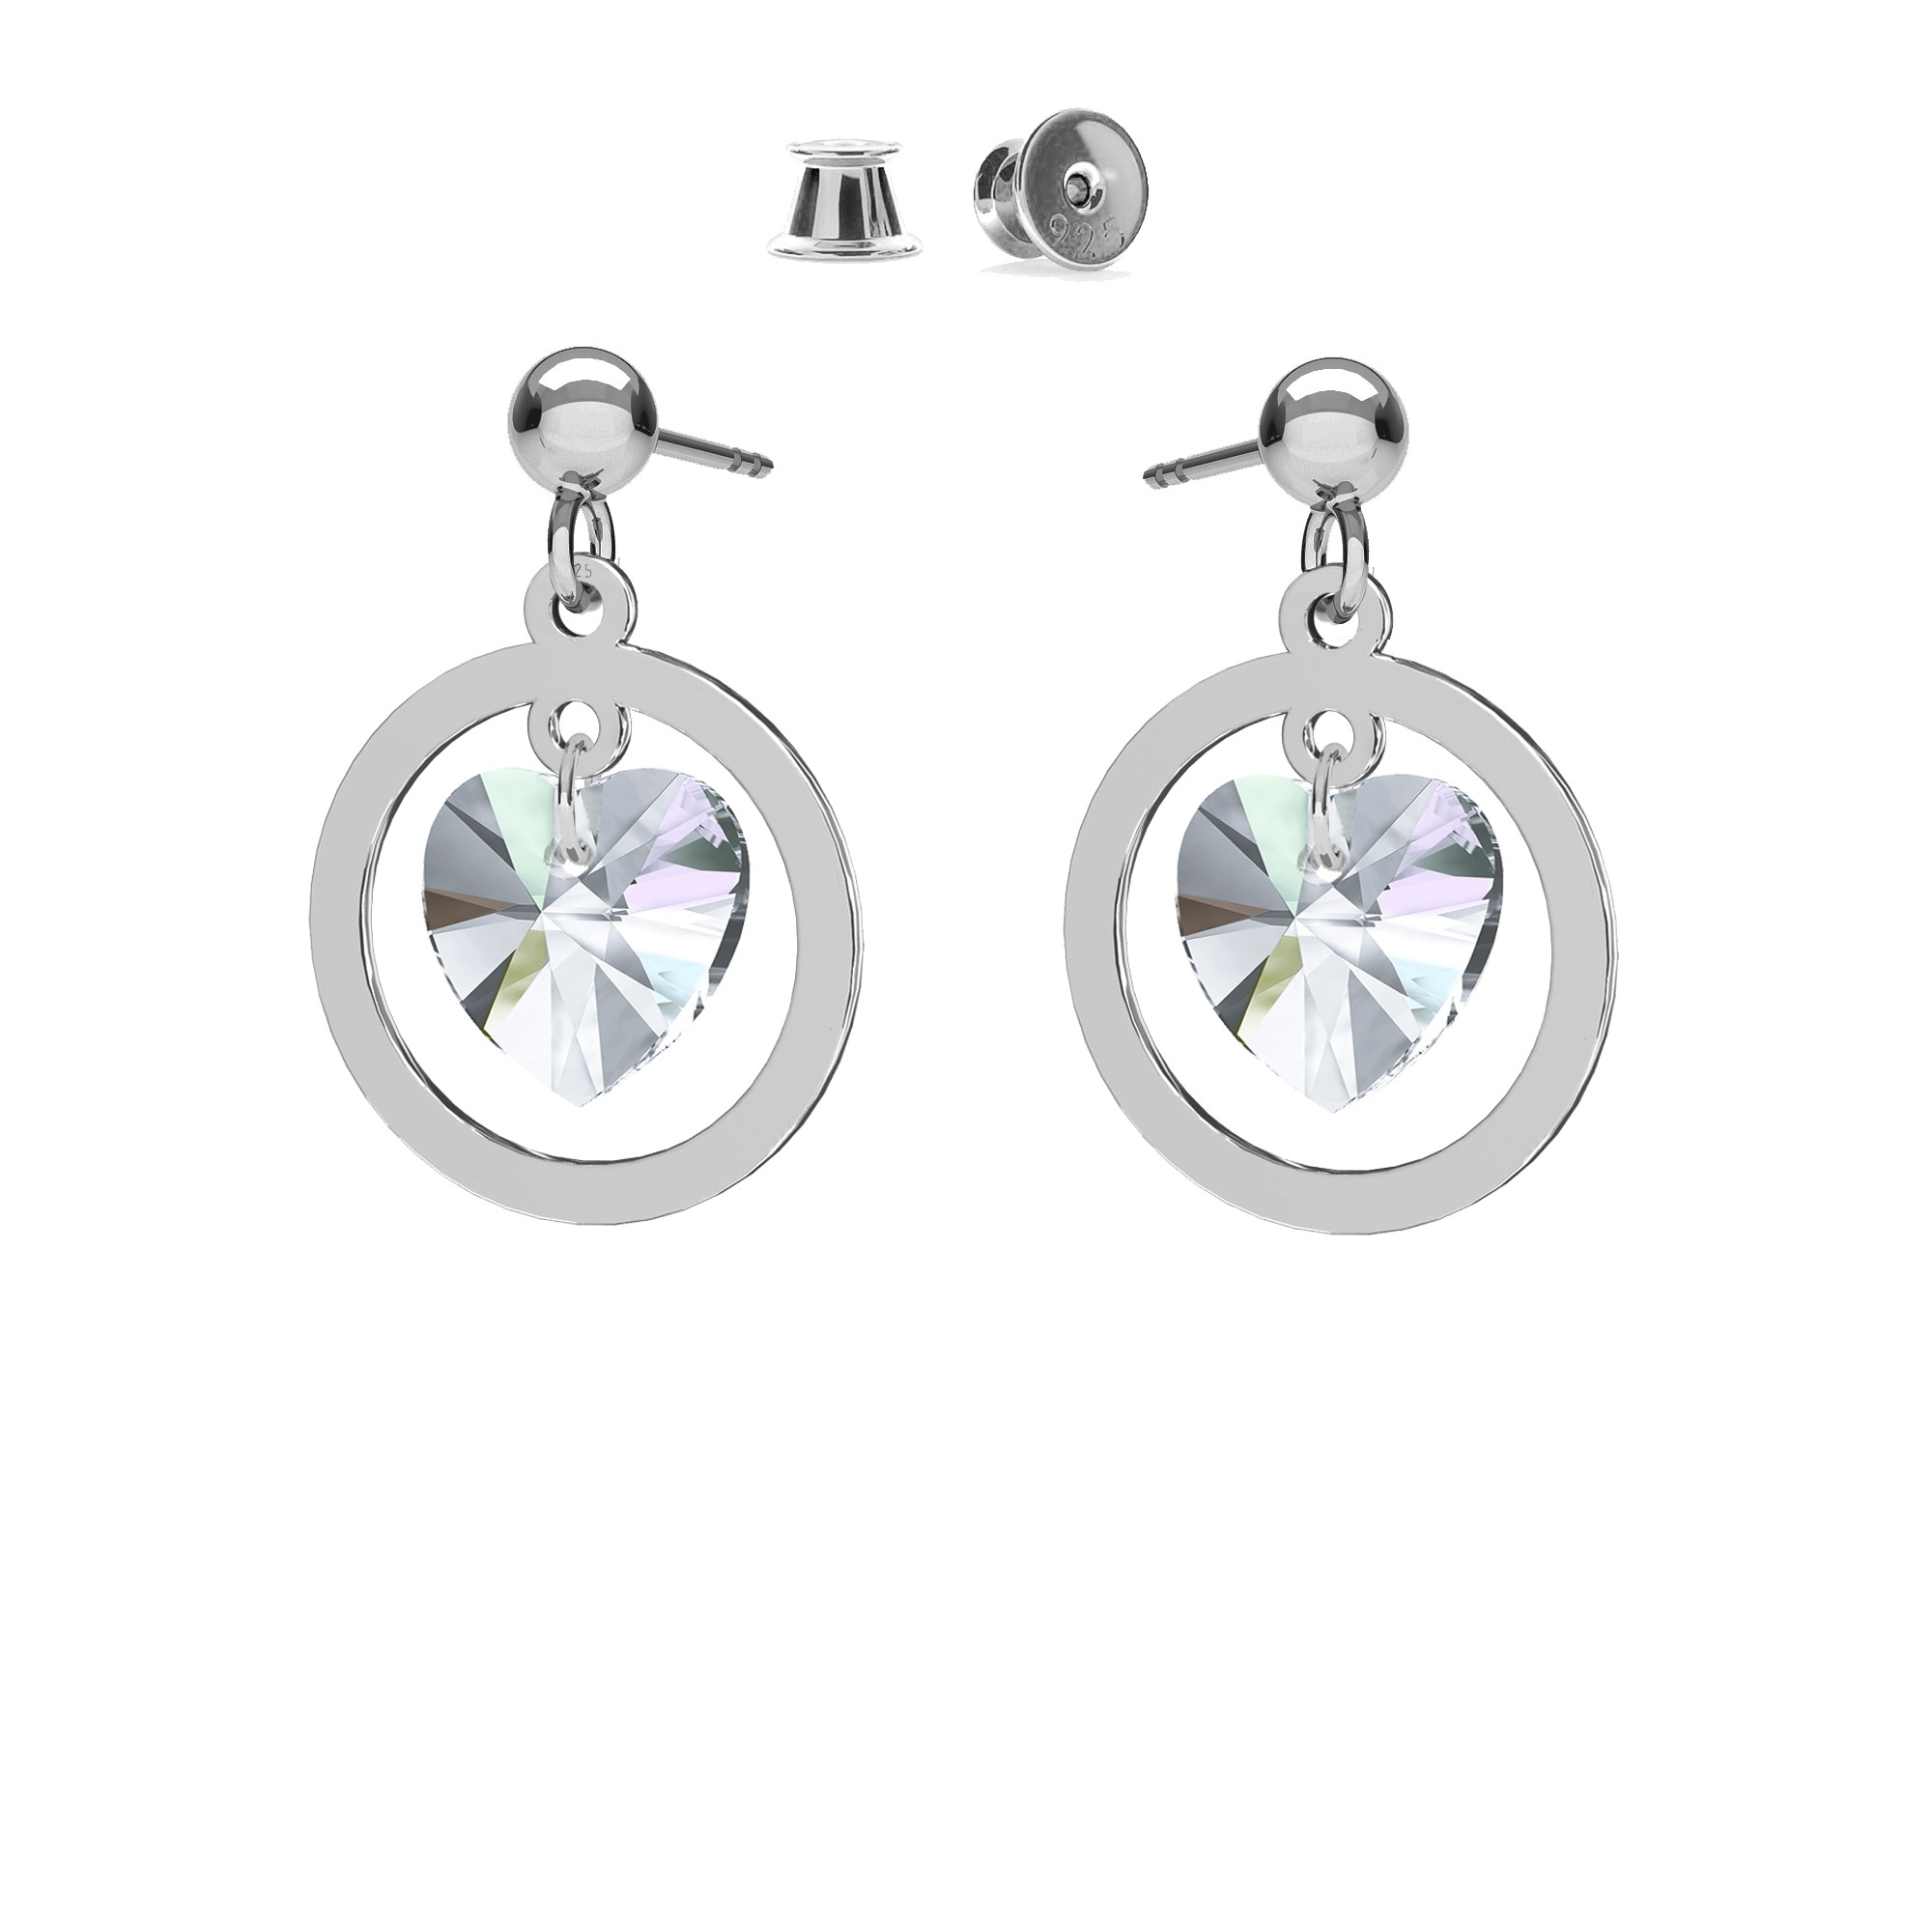 Swarovski crystal drop earrings MON DÉFI, silver 925